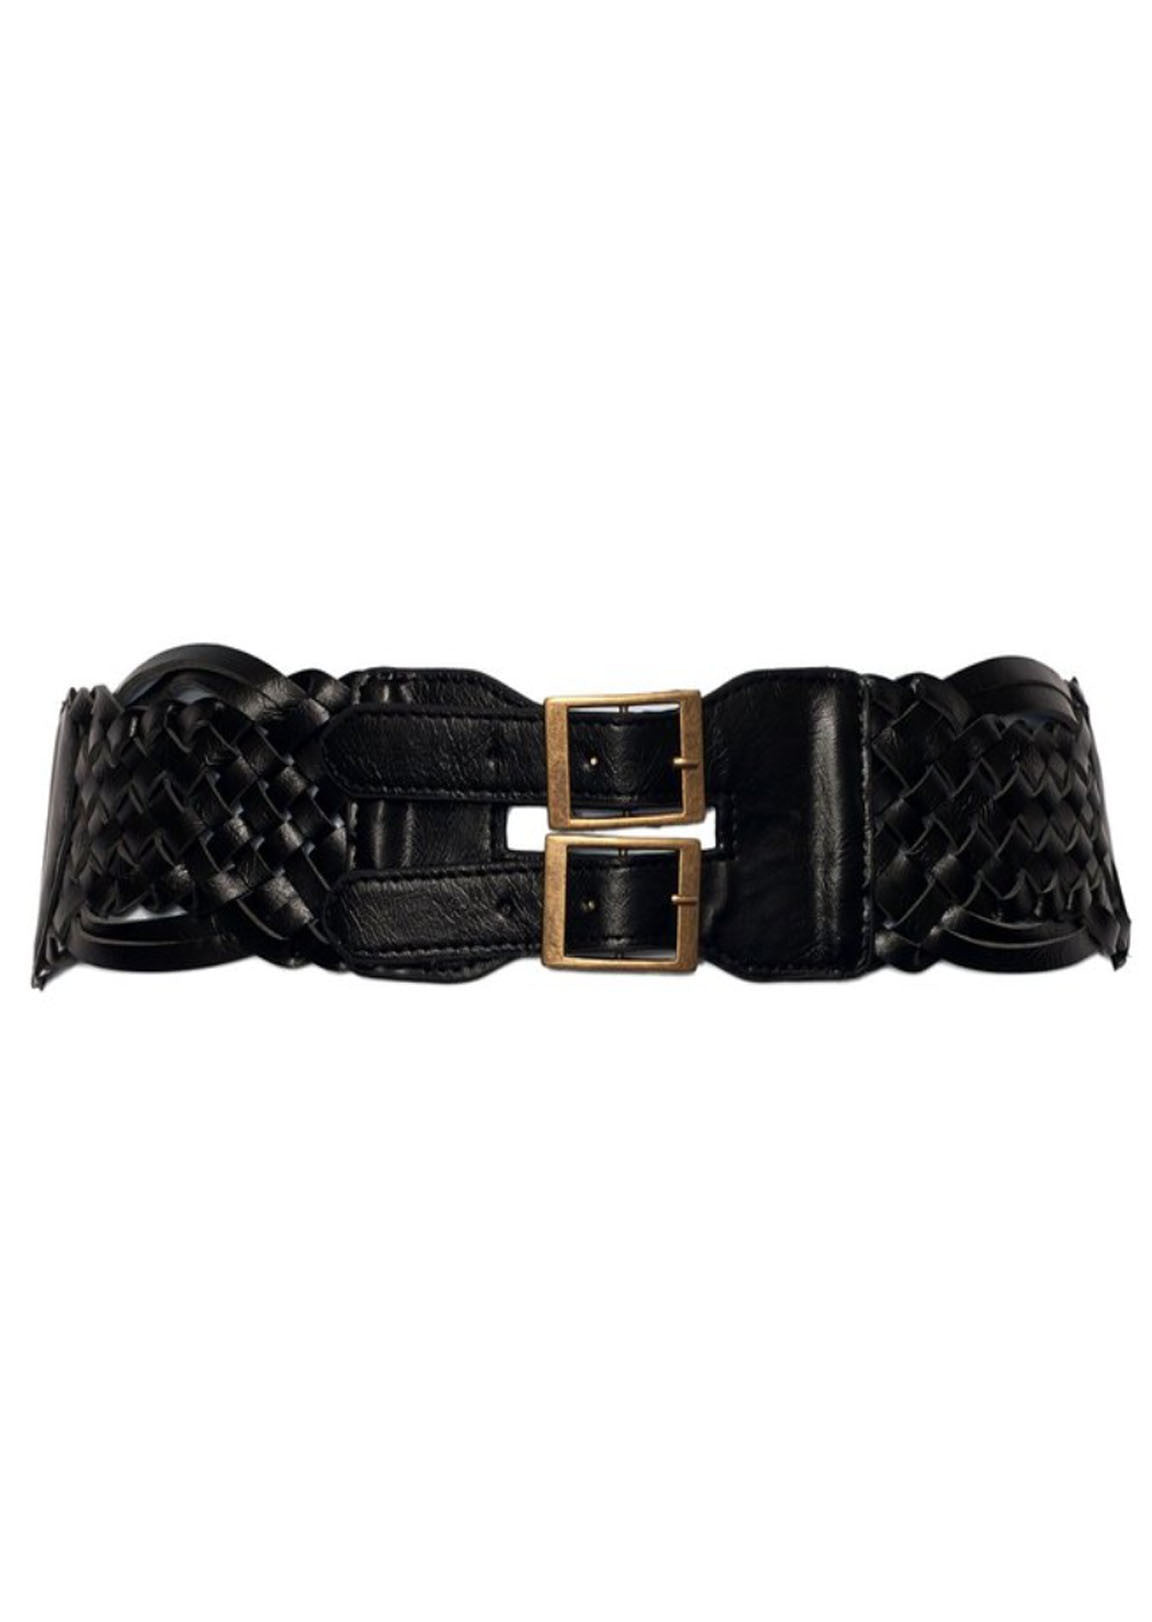 Black Braided Belt (34 - 42 inch waist)